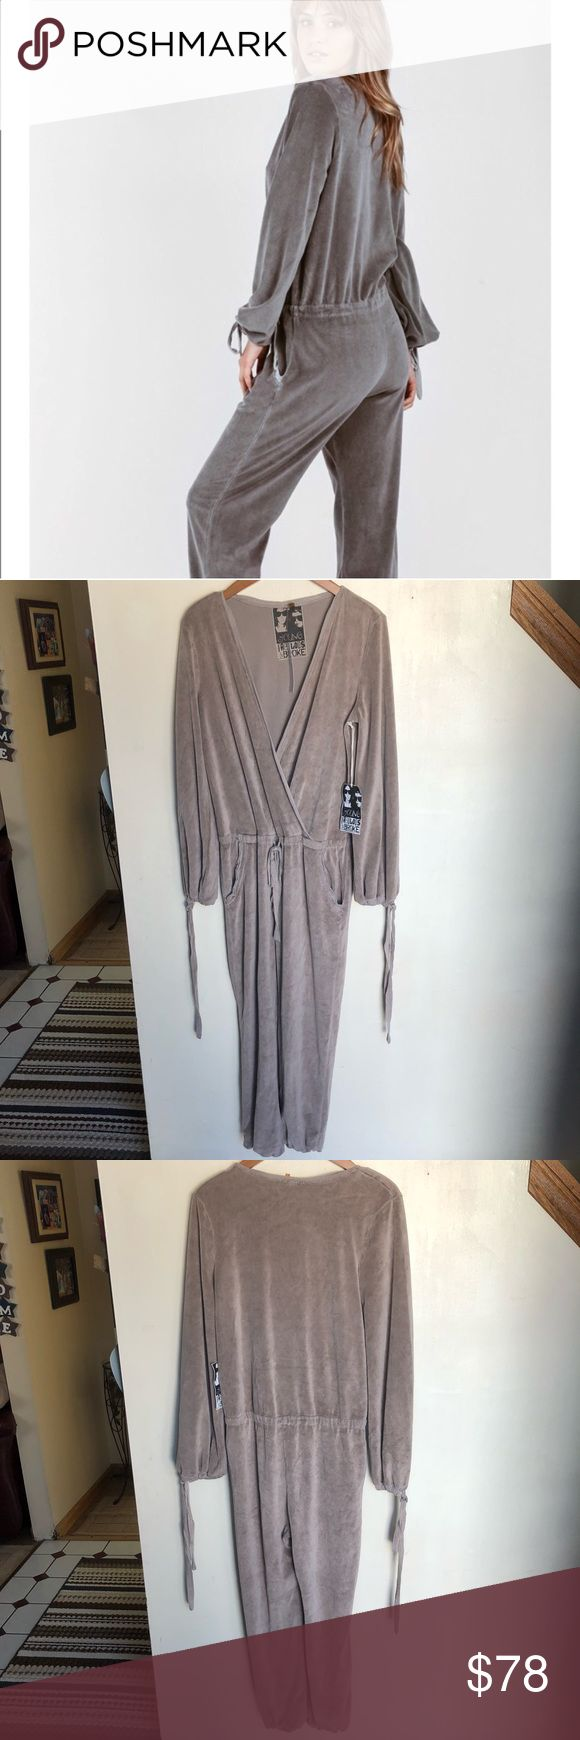 $70 BLOWOUT! Young Fabulous & Broke jumpsuit NWT Young, Fabulous & Broke fila long sleeve jumpsuit size Small. This beautiful piece is so comfortable for a casual night in. The color can best be described as in between a grey and tan color so I will just list both as the color. I'm selling this for the cheapest price on Poshmark! Feel free to make any reasonable offers using the Offer button and plz don't haggle in the comments section. No trades. Young Fabulous & Broke Pants Jumpsuits…